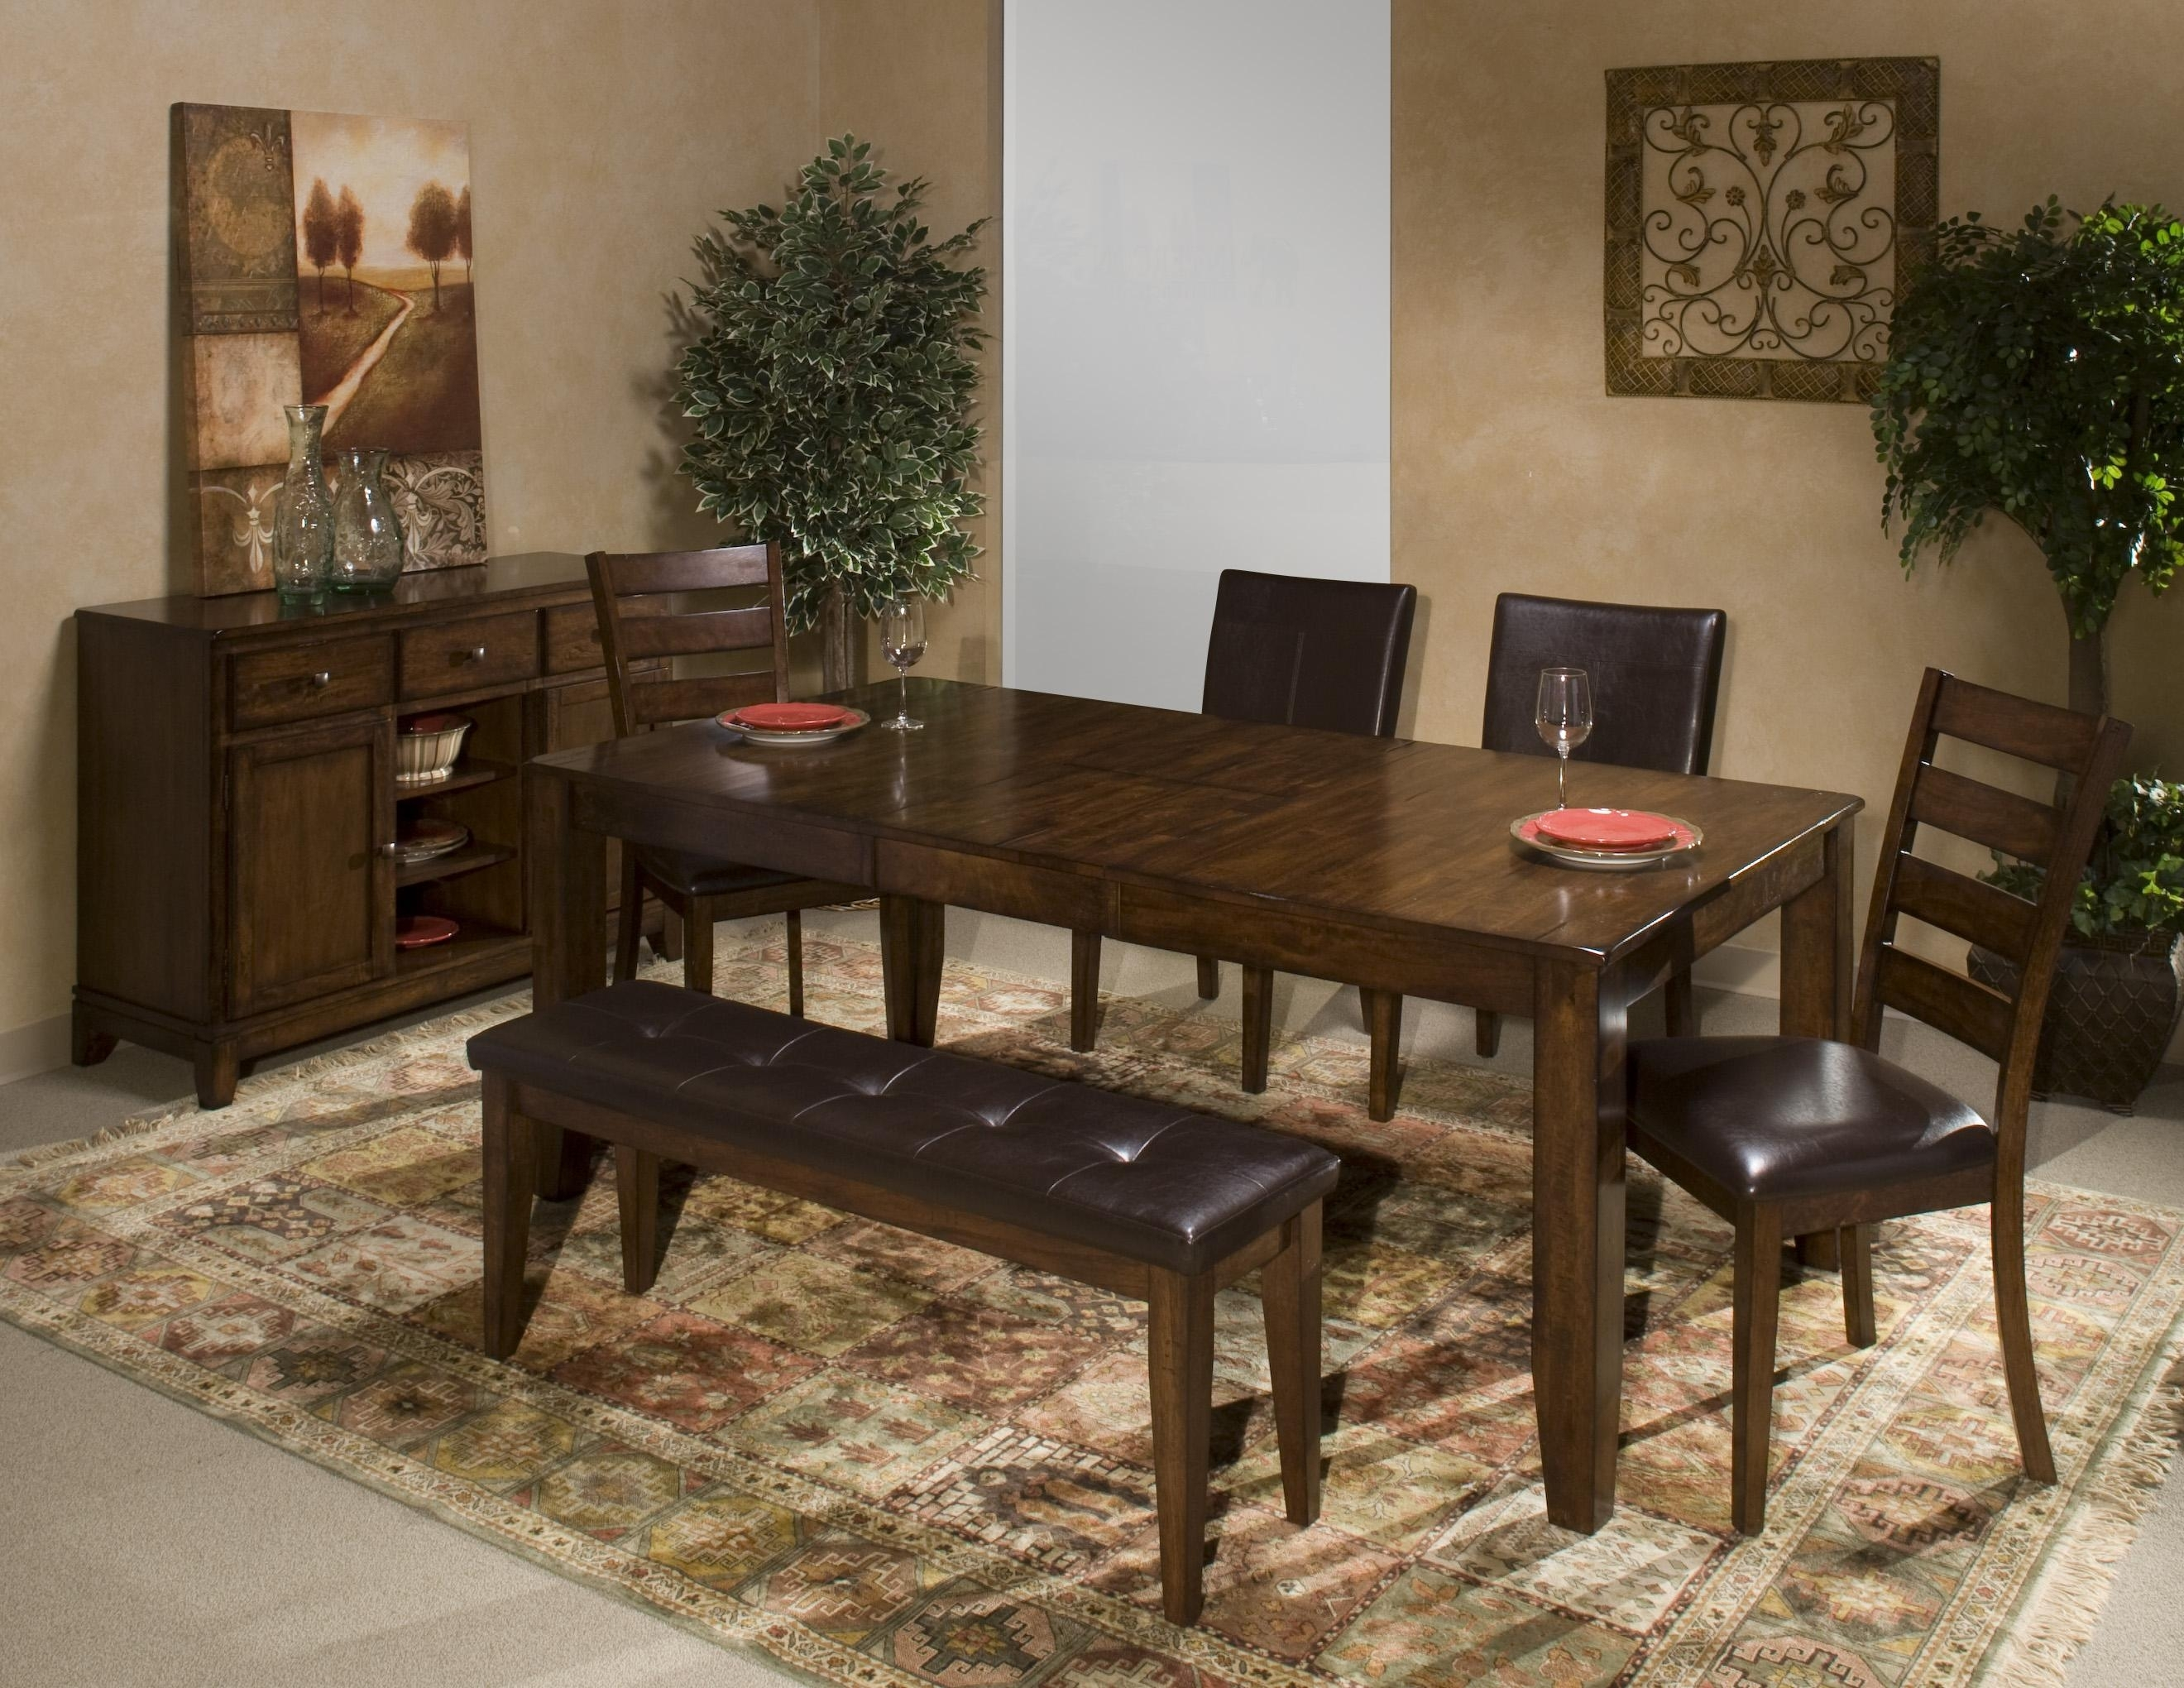 Intercon Kona Counter Height Table With Leaf | Wayside Furniture Intended For Most Up To Date Market 6 Piece Dining Sets With Host And Side Chairs (View 11 of 20)